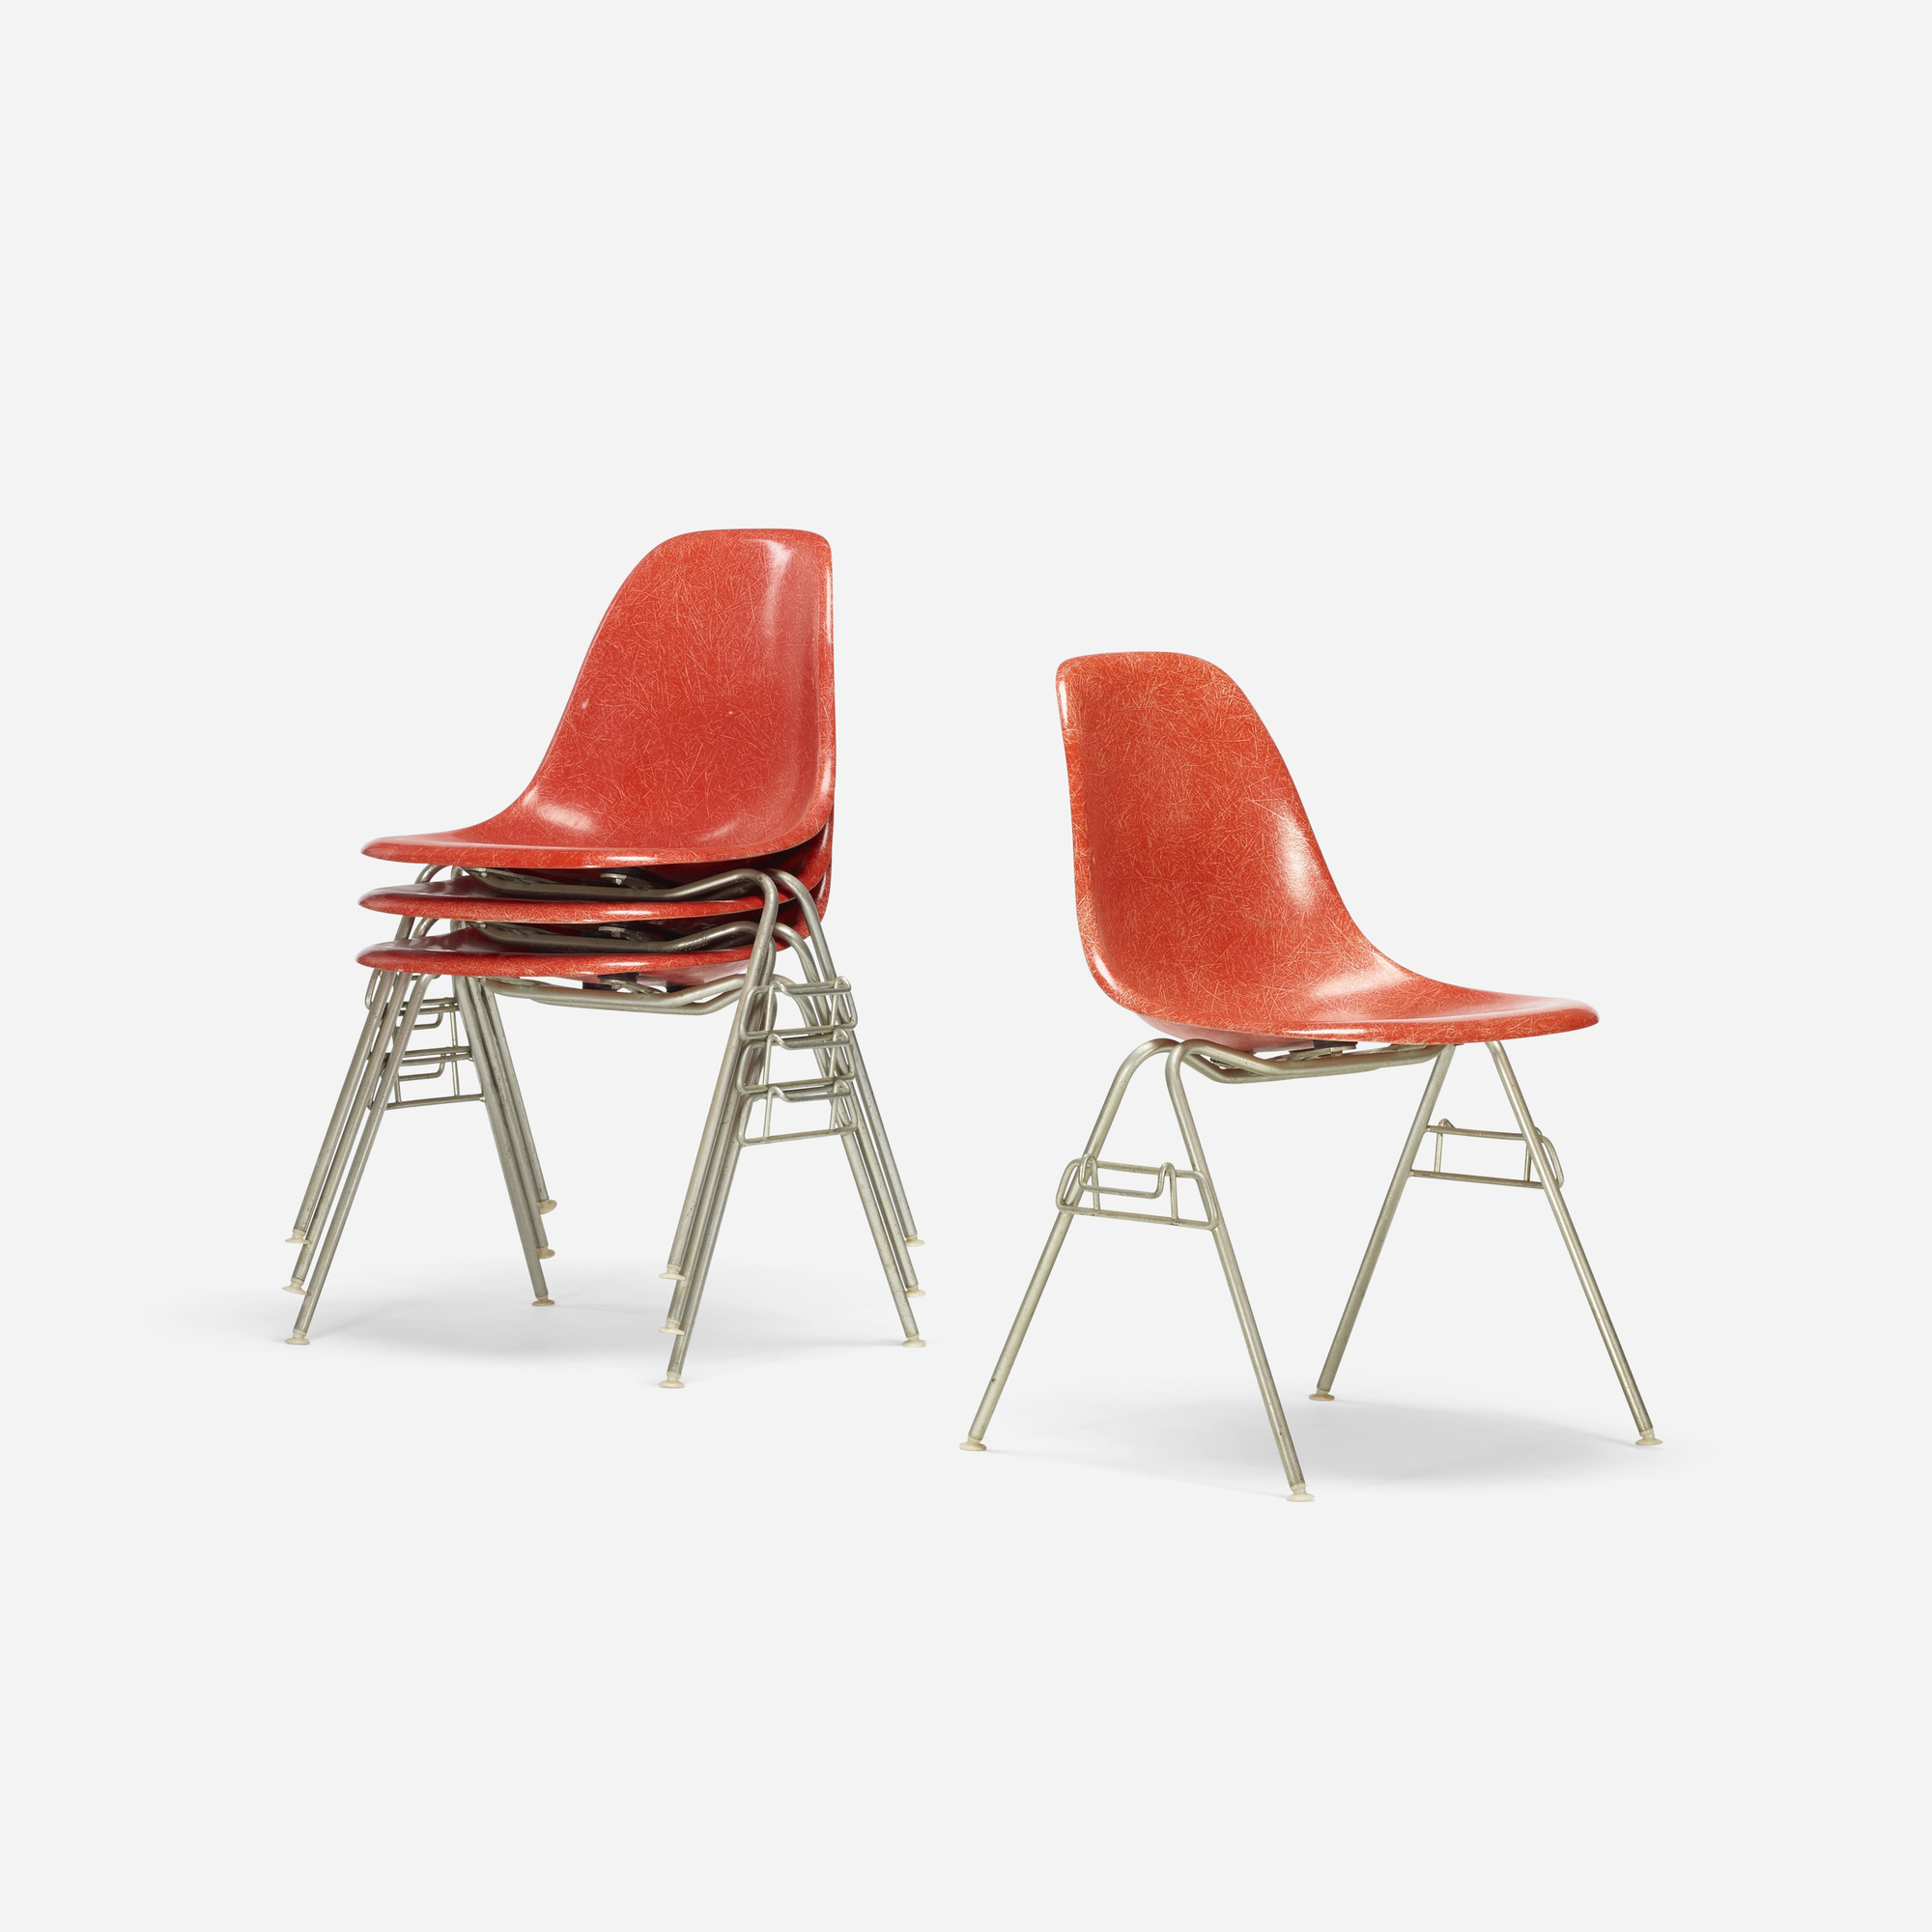 261: Charles and Ray Eames / DSSs, set of four (2 of 2)